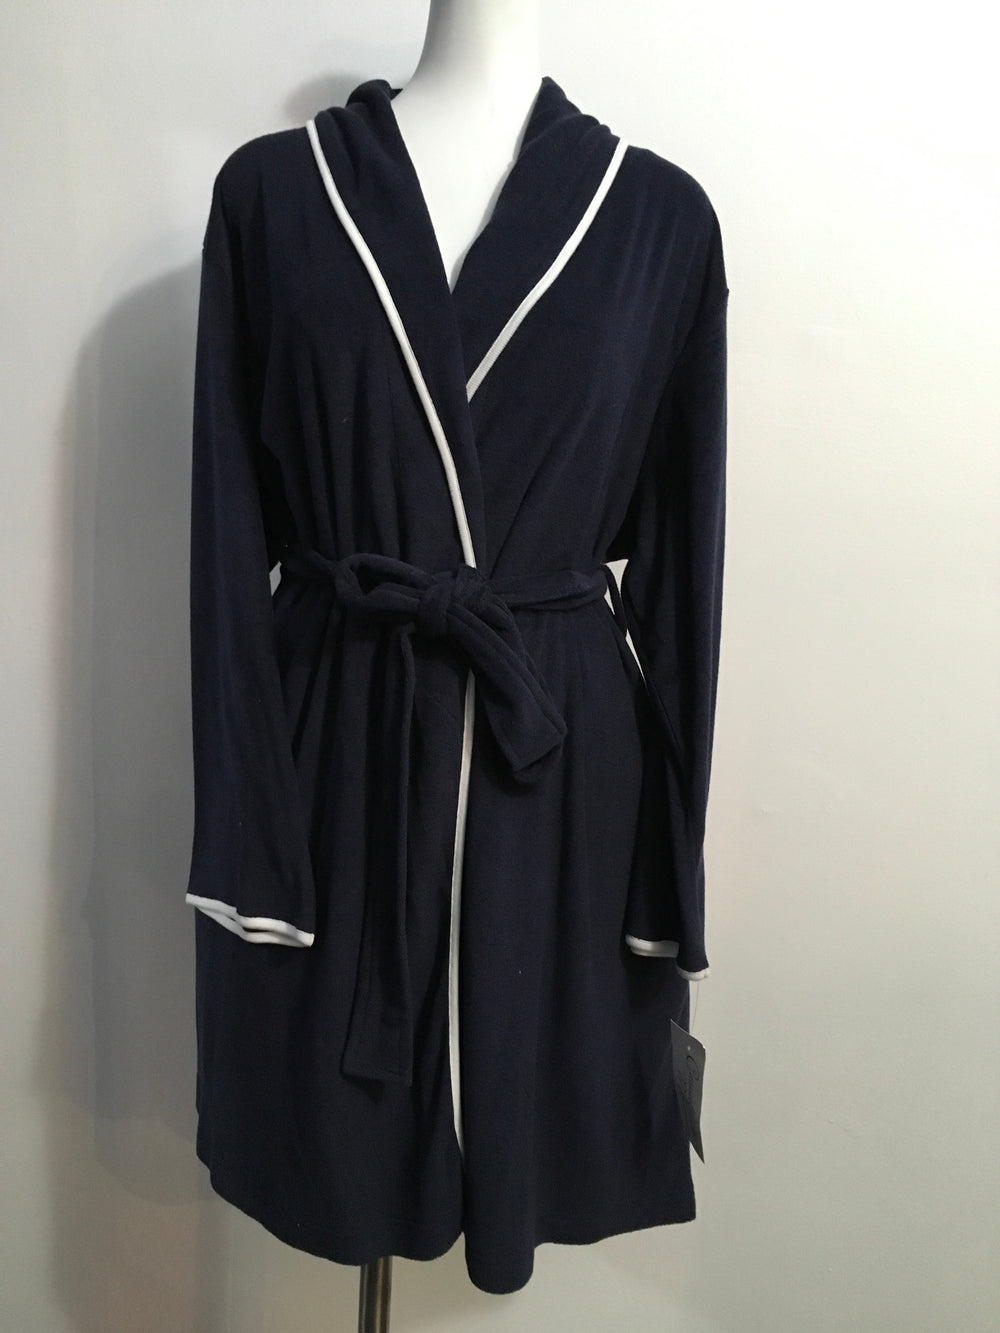 Casual Moments Baby Terry Robe - Sheer Essentials Lingerie & Swim